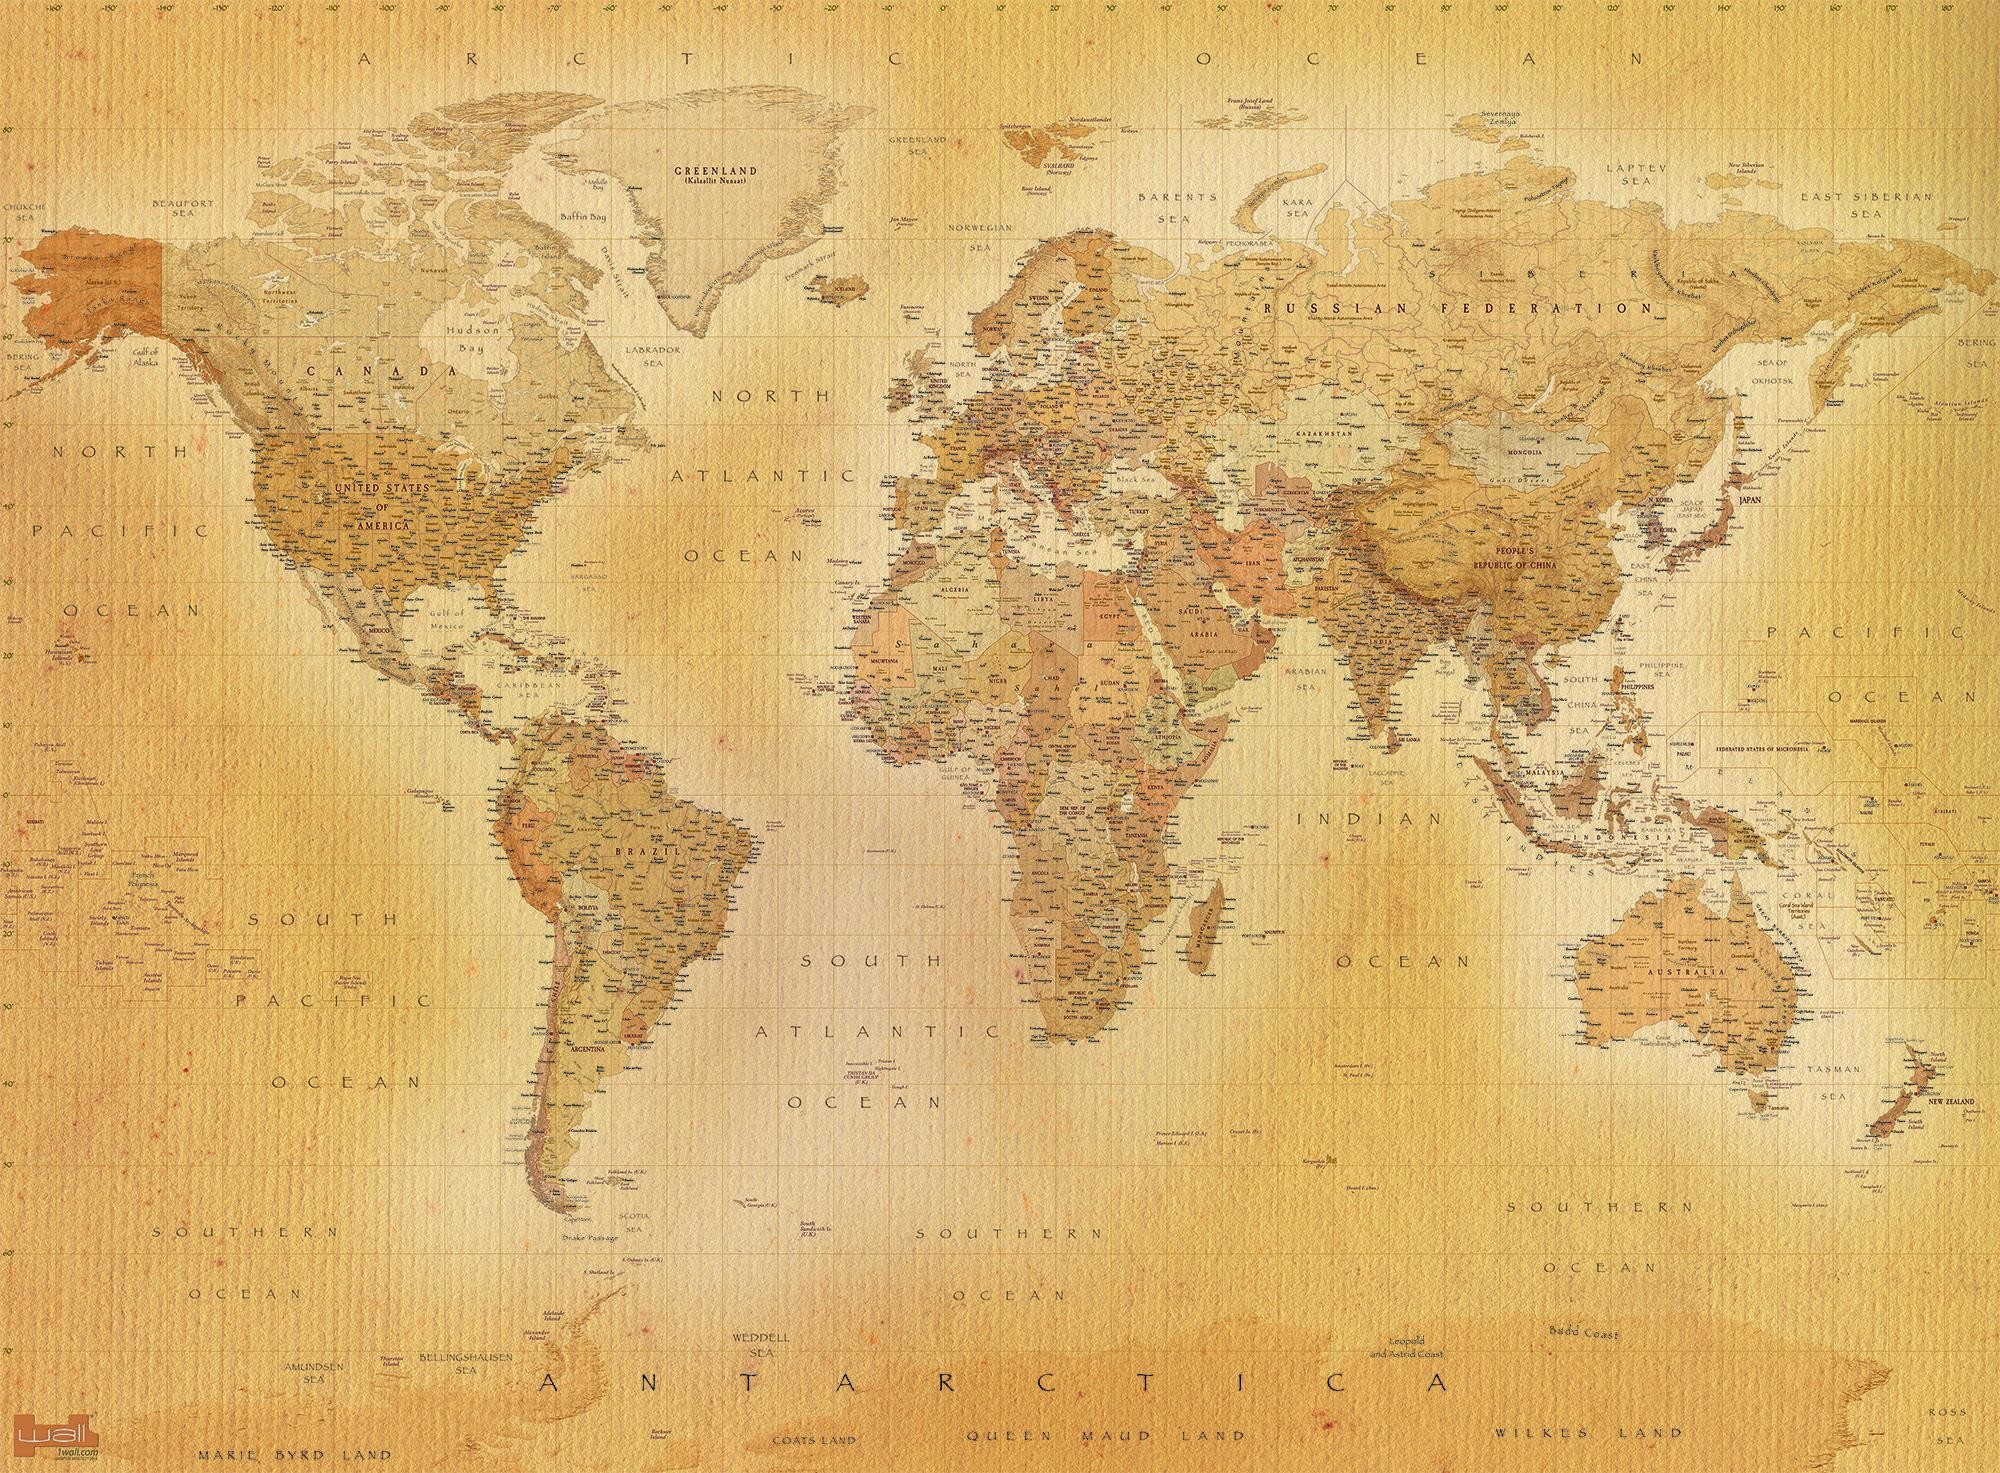 Antique world map wallpaper 39 images 2000x1473 wallpaper download antique map picture 1 pic gumiabroncs Image collections